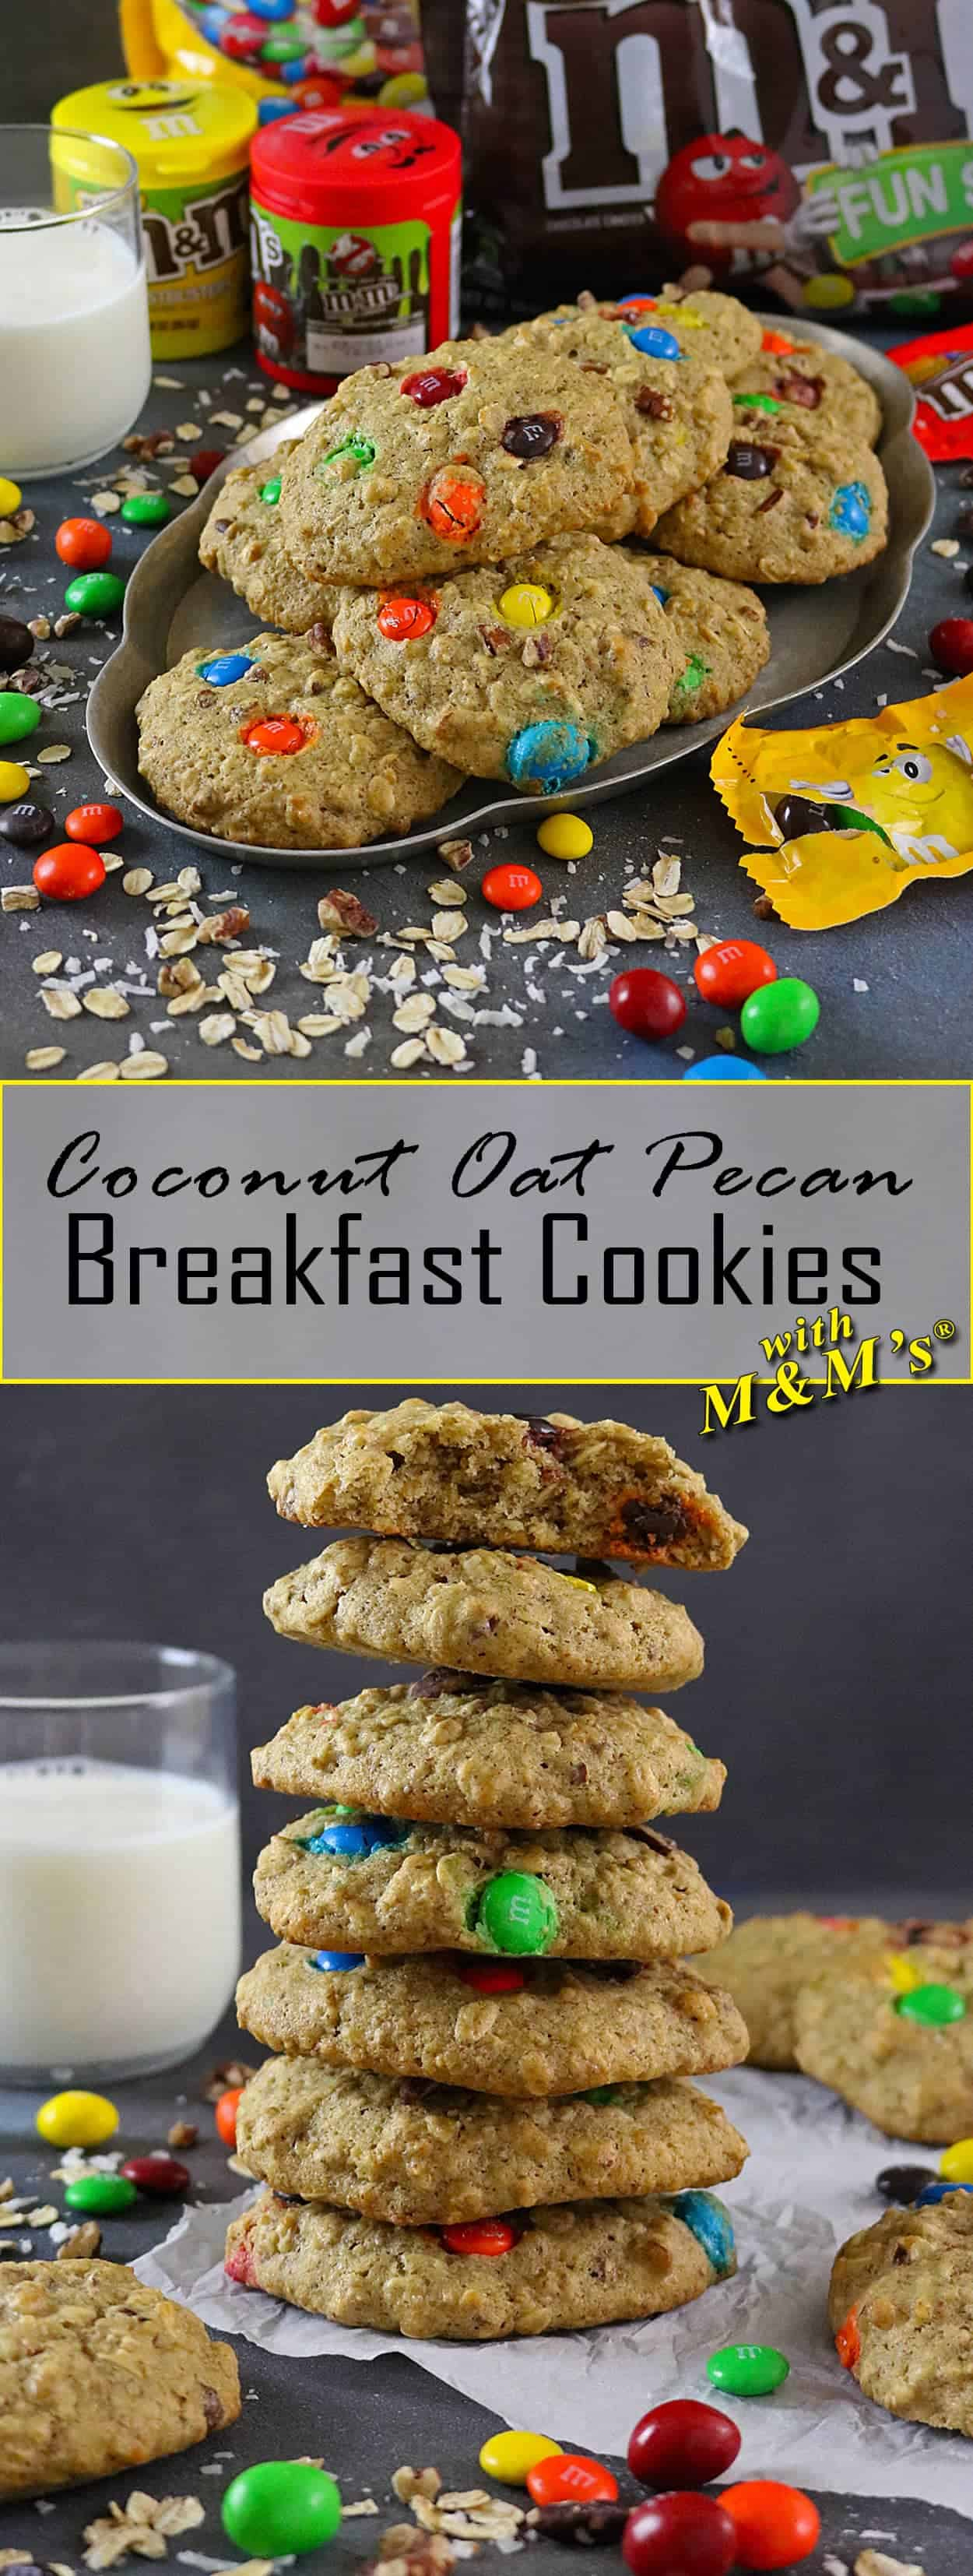 Coconut Oat Pecan Breakfast Cookies #BTSSpirit #ad